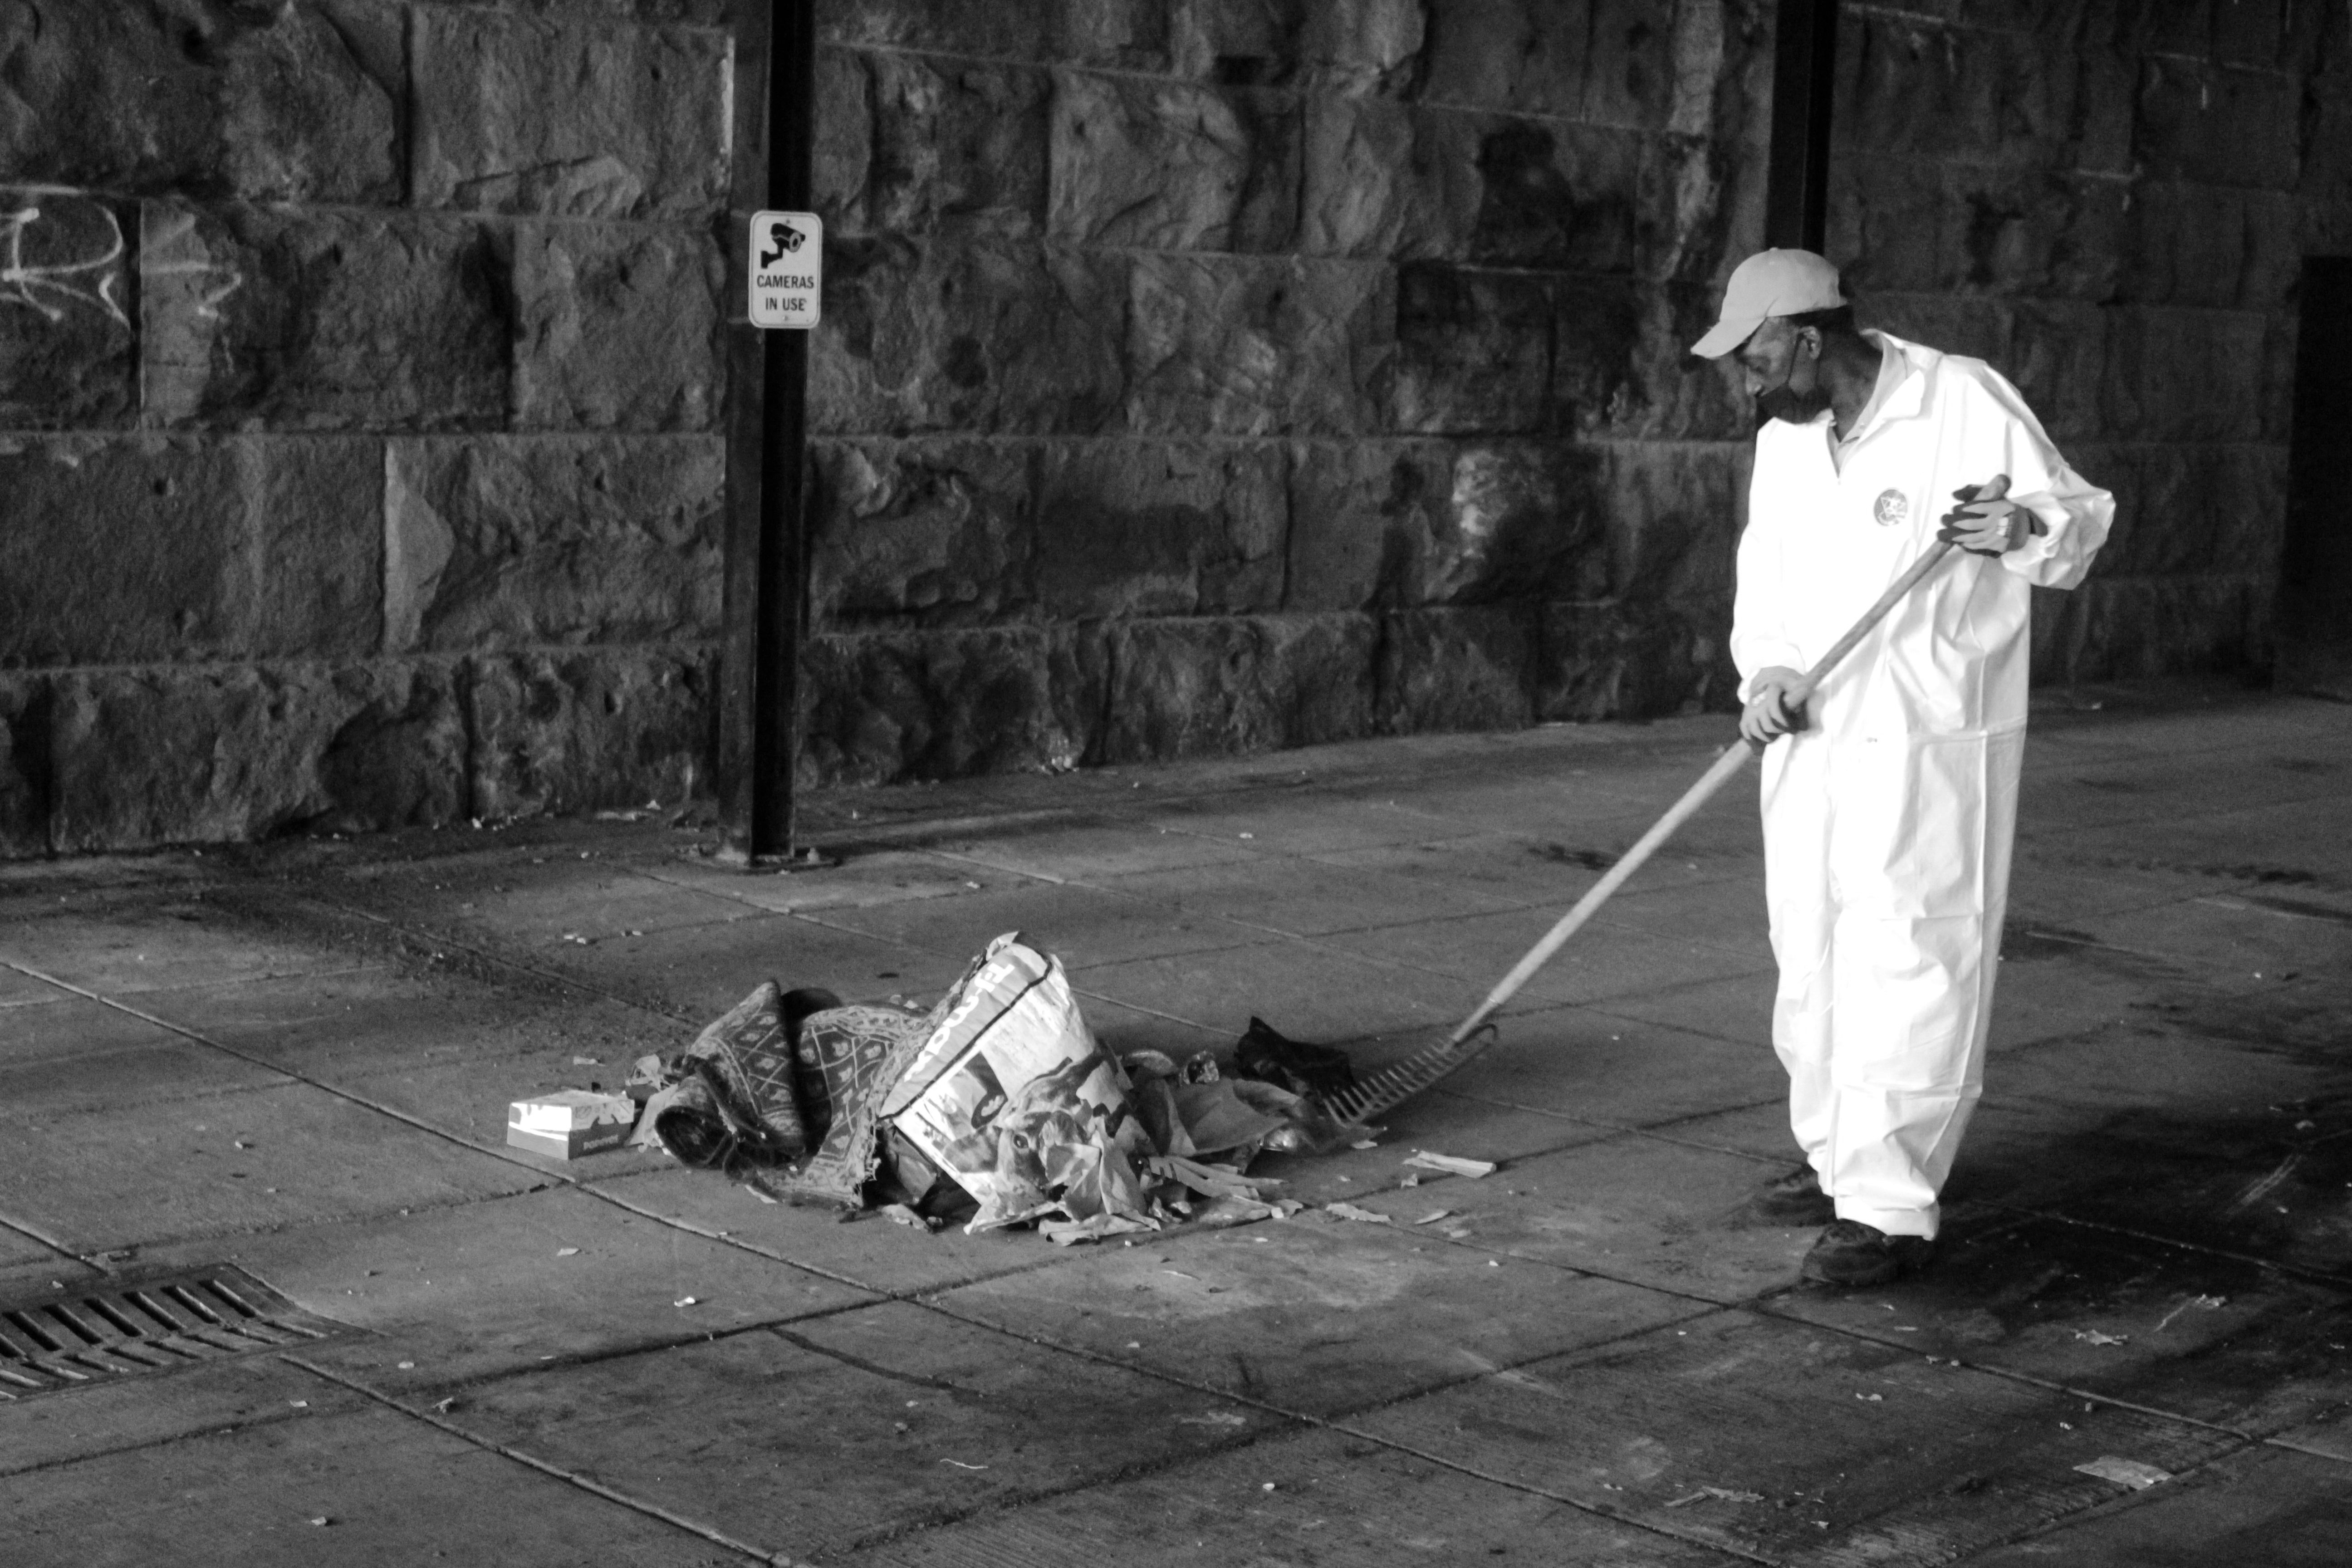 A DC city worker sweeps together a pile of belongings